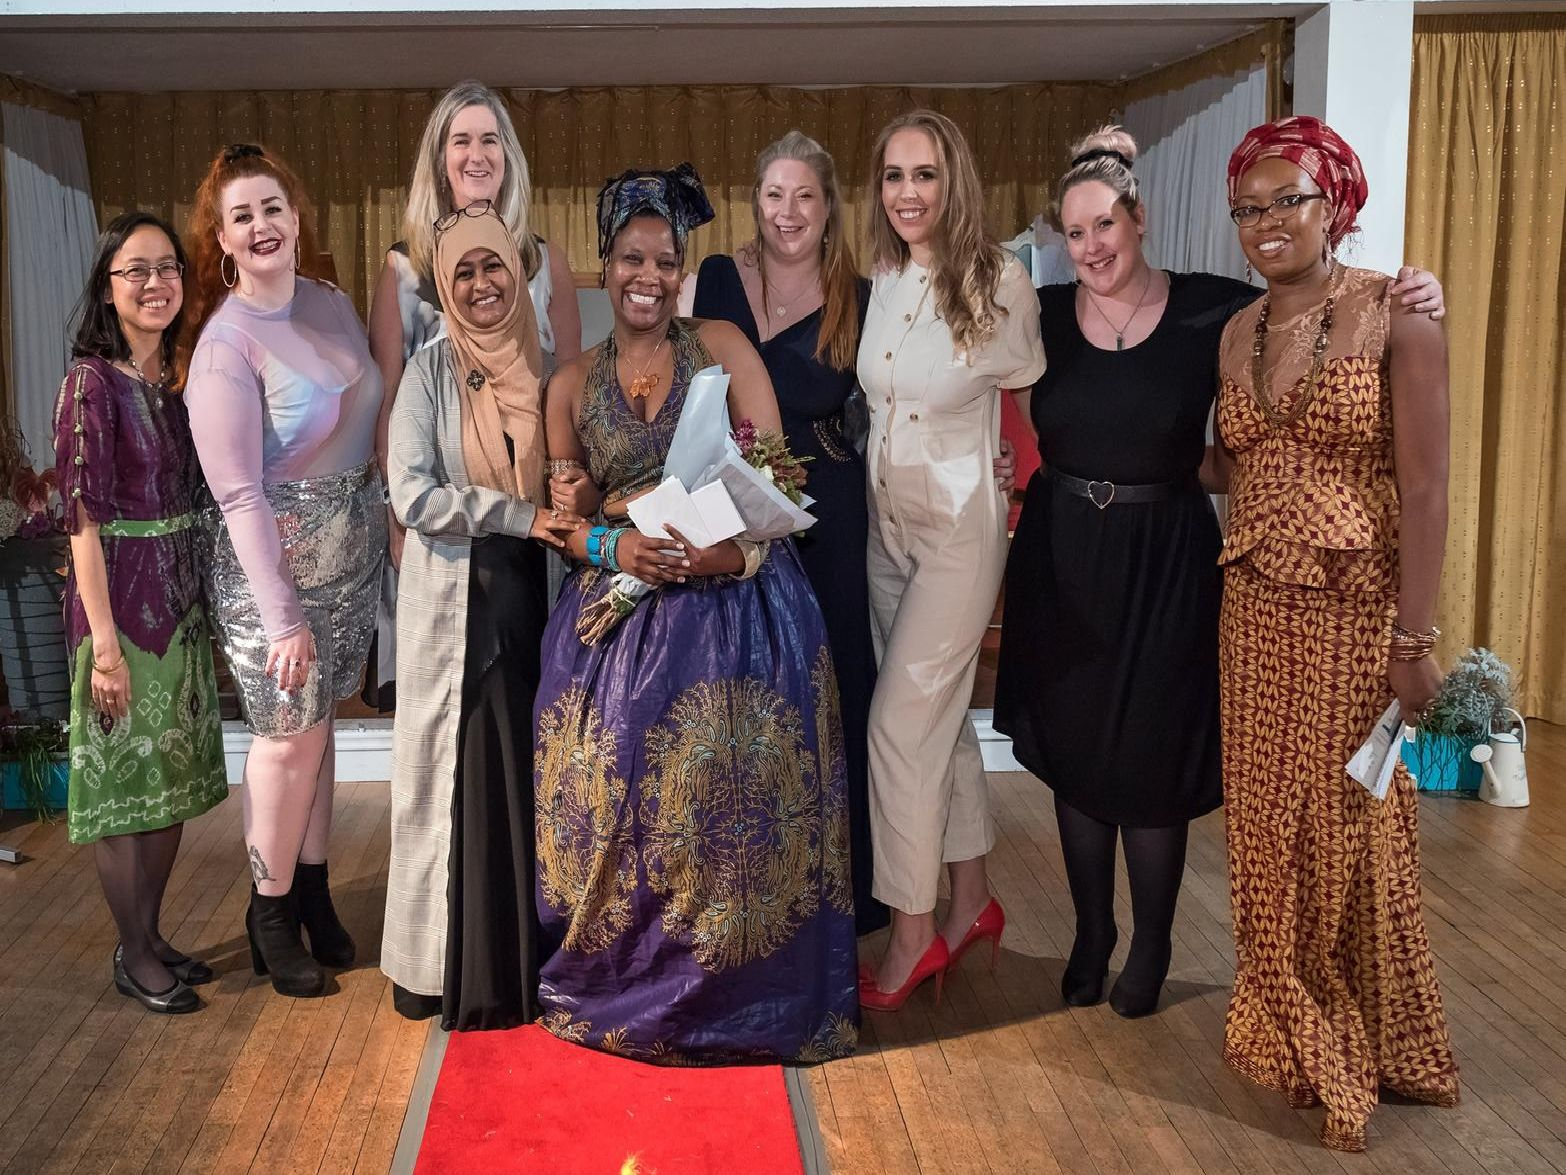 Organisers: Maricar Jagger, Tamzin Cormican, Claire Martin, Rowshonara Reza, Roni Edwards, Amy Doyle, Jen Sanchez, Carly-Ann Purcell and Freida M'Cormack.